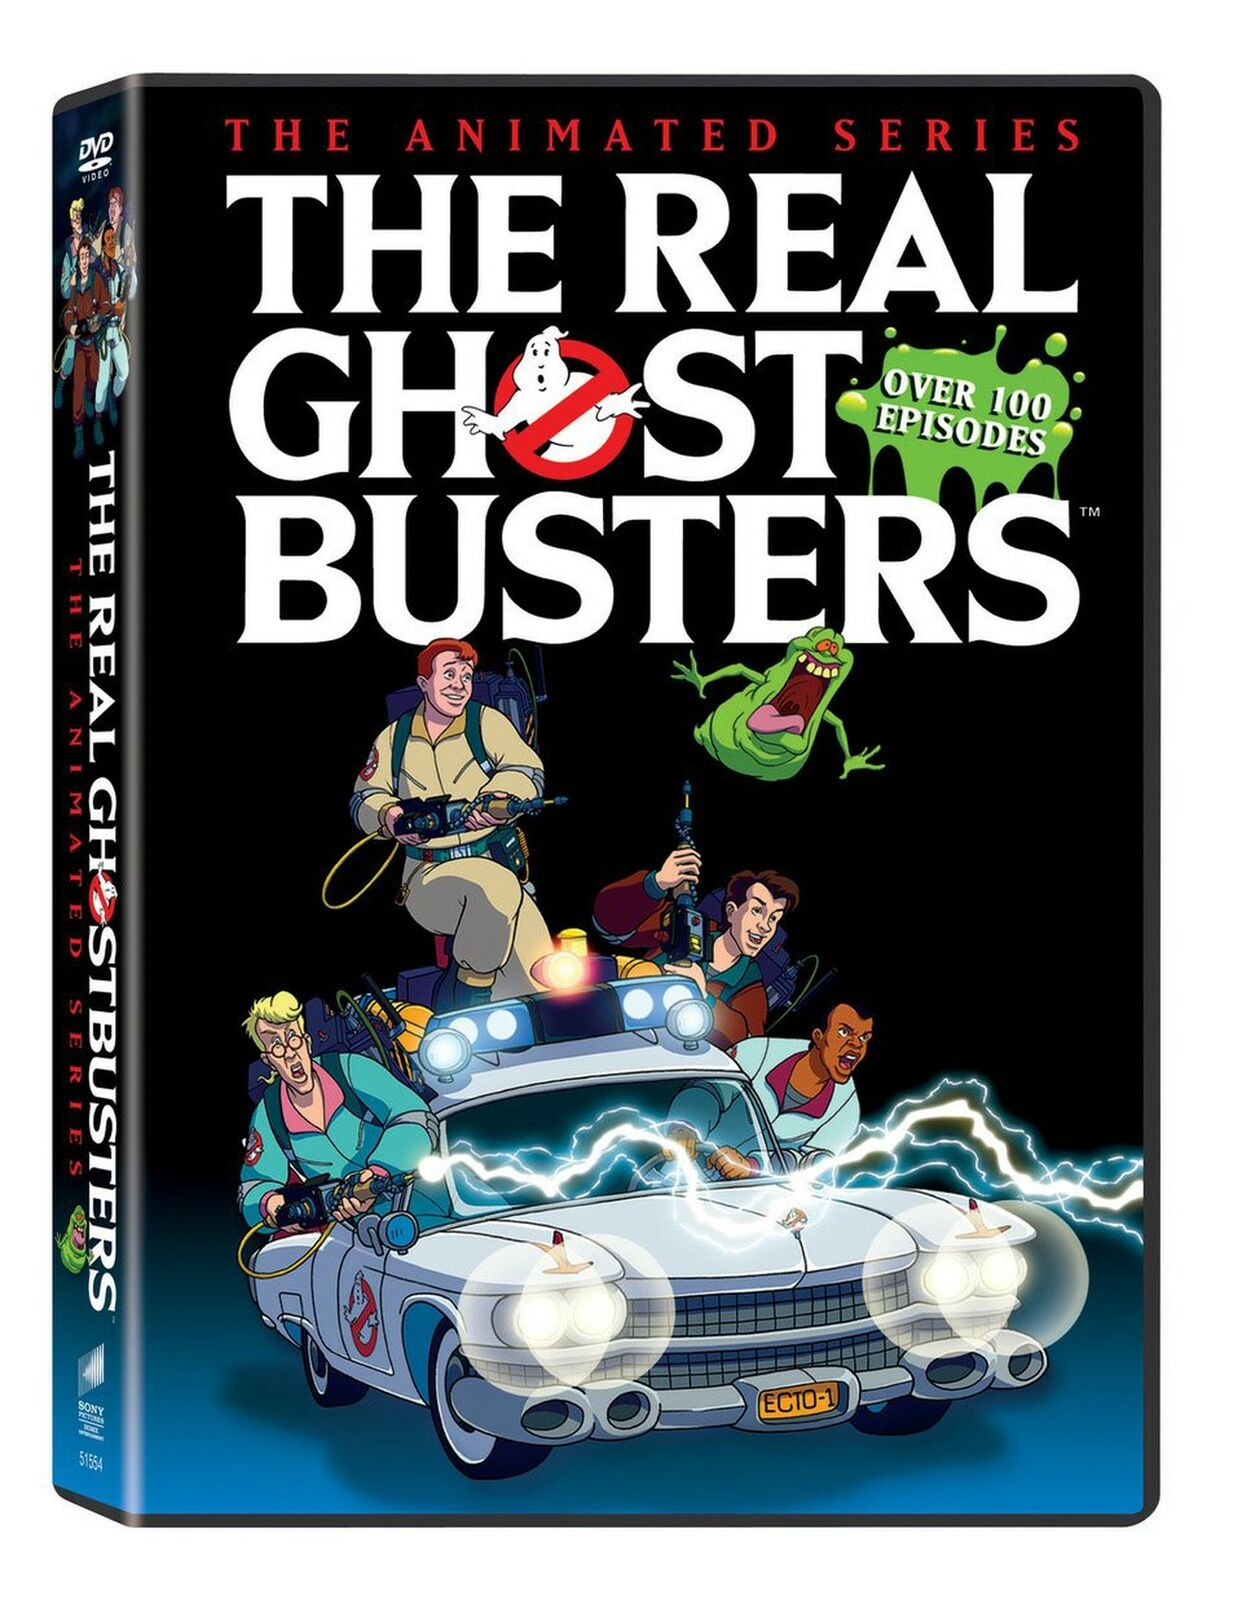 The Real Ghostbusters Cartoon 80s Volumes 1 10 Boxed Dvd Set For Sale Online Ebay